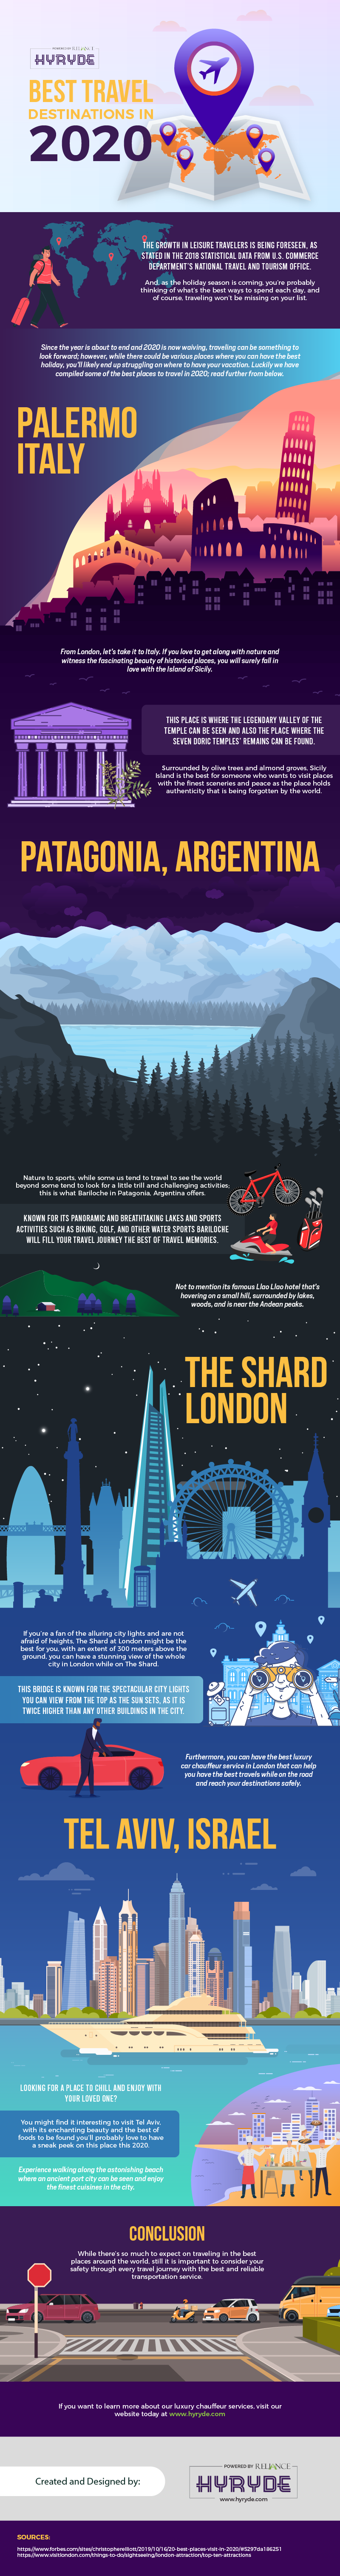 Best Travel Destinations in 2020 (Infographic)